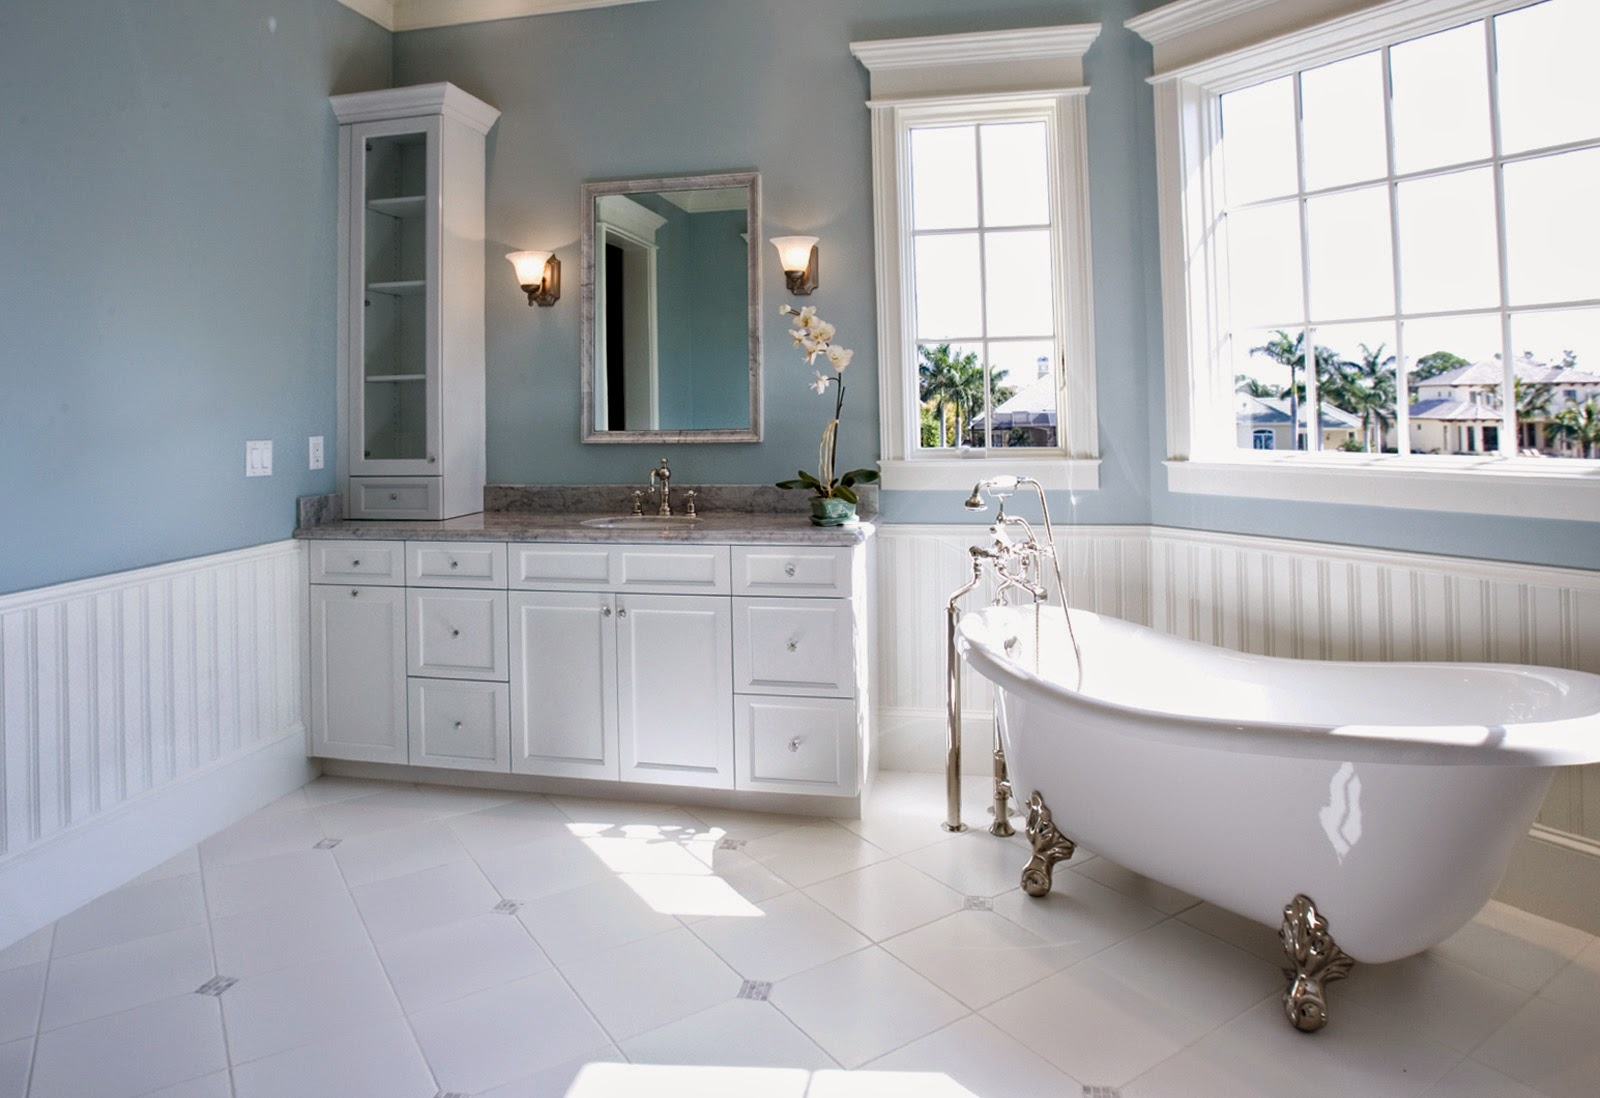 TOP 10 Beautiful Bathroom Design 2014 | Home Interior Blog ...